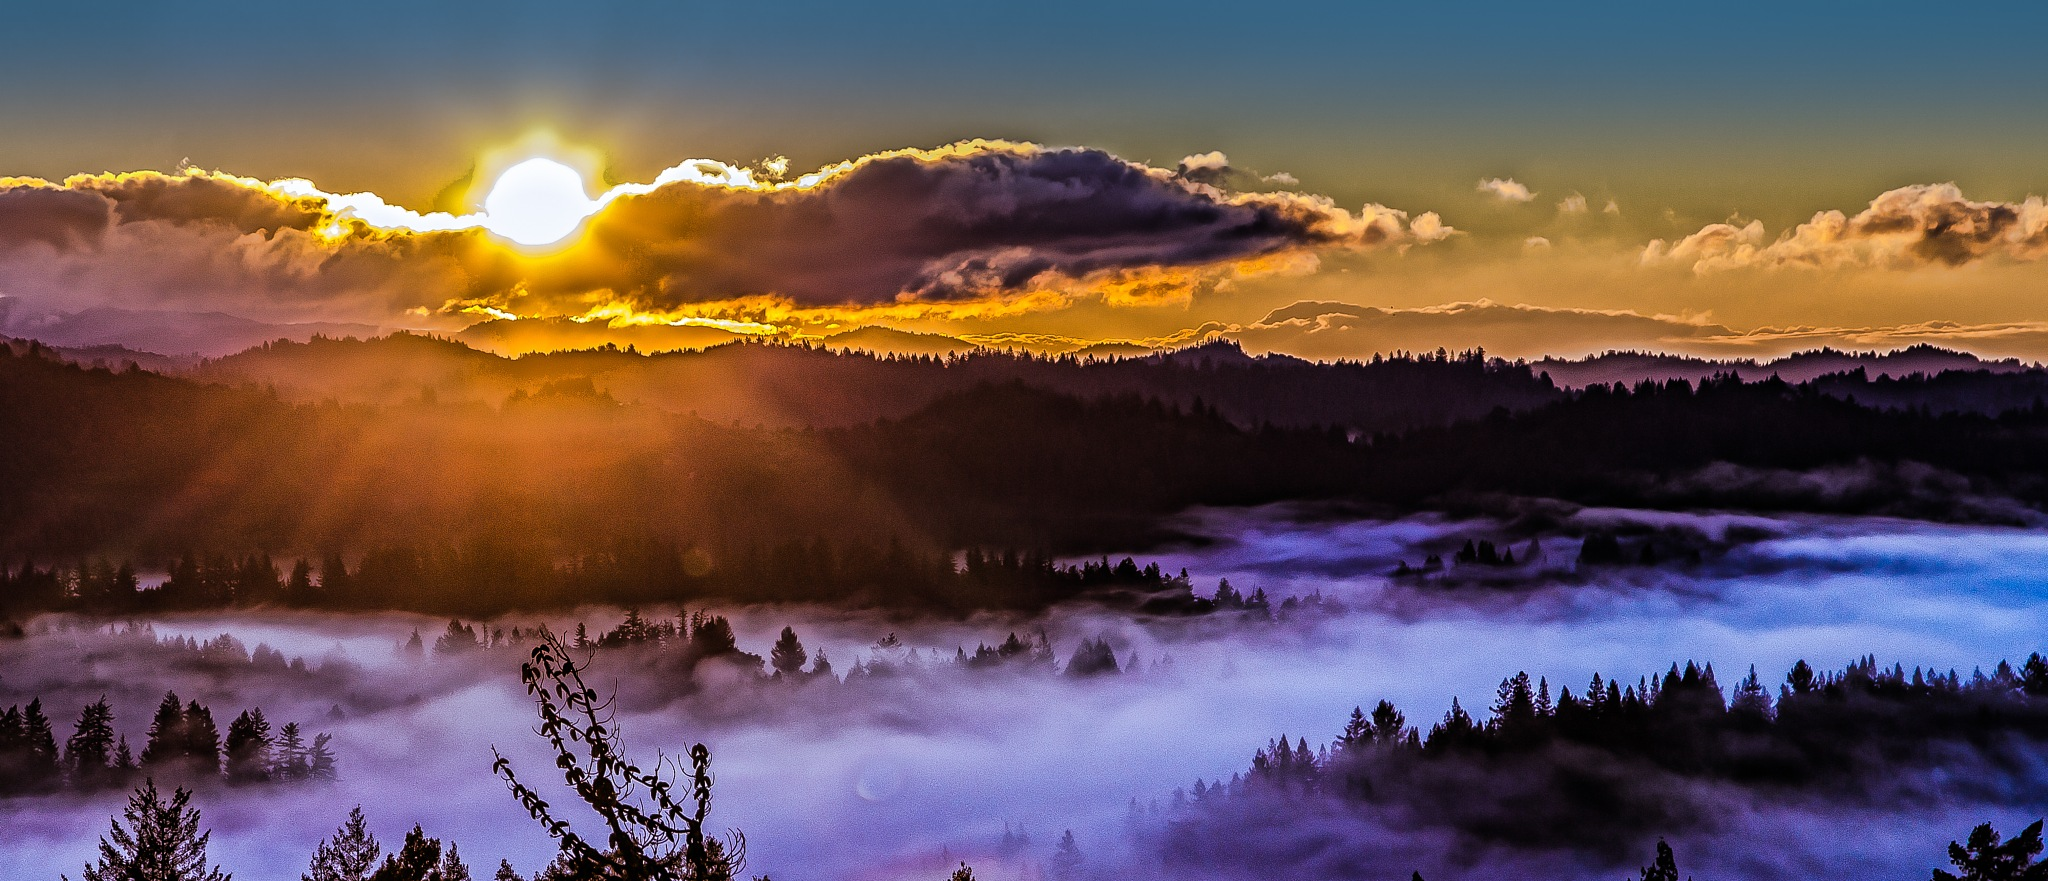 sunrise over the clouds by volkhard sturzbecher